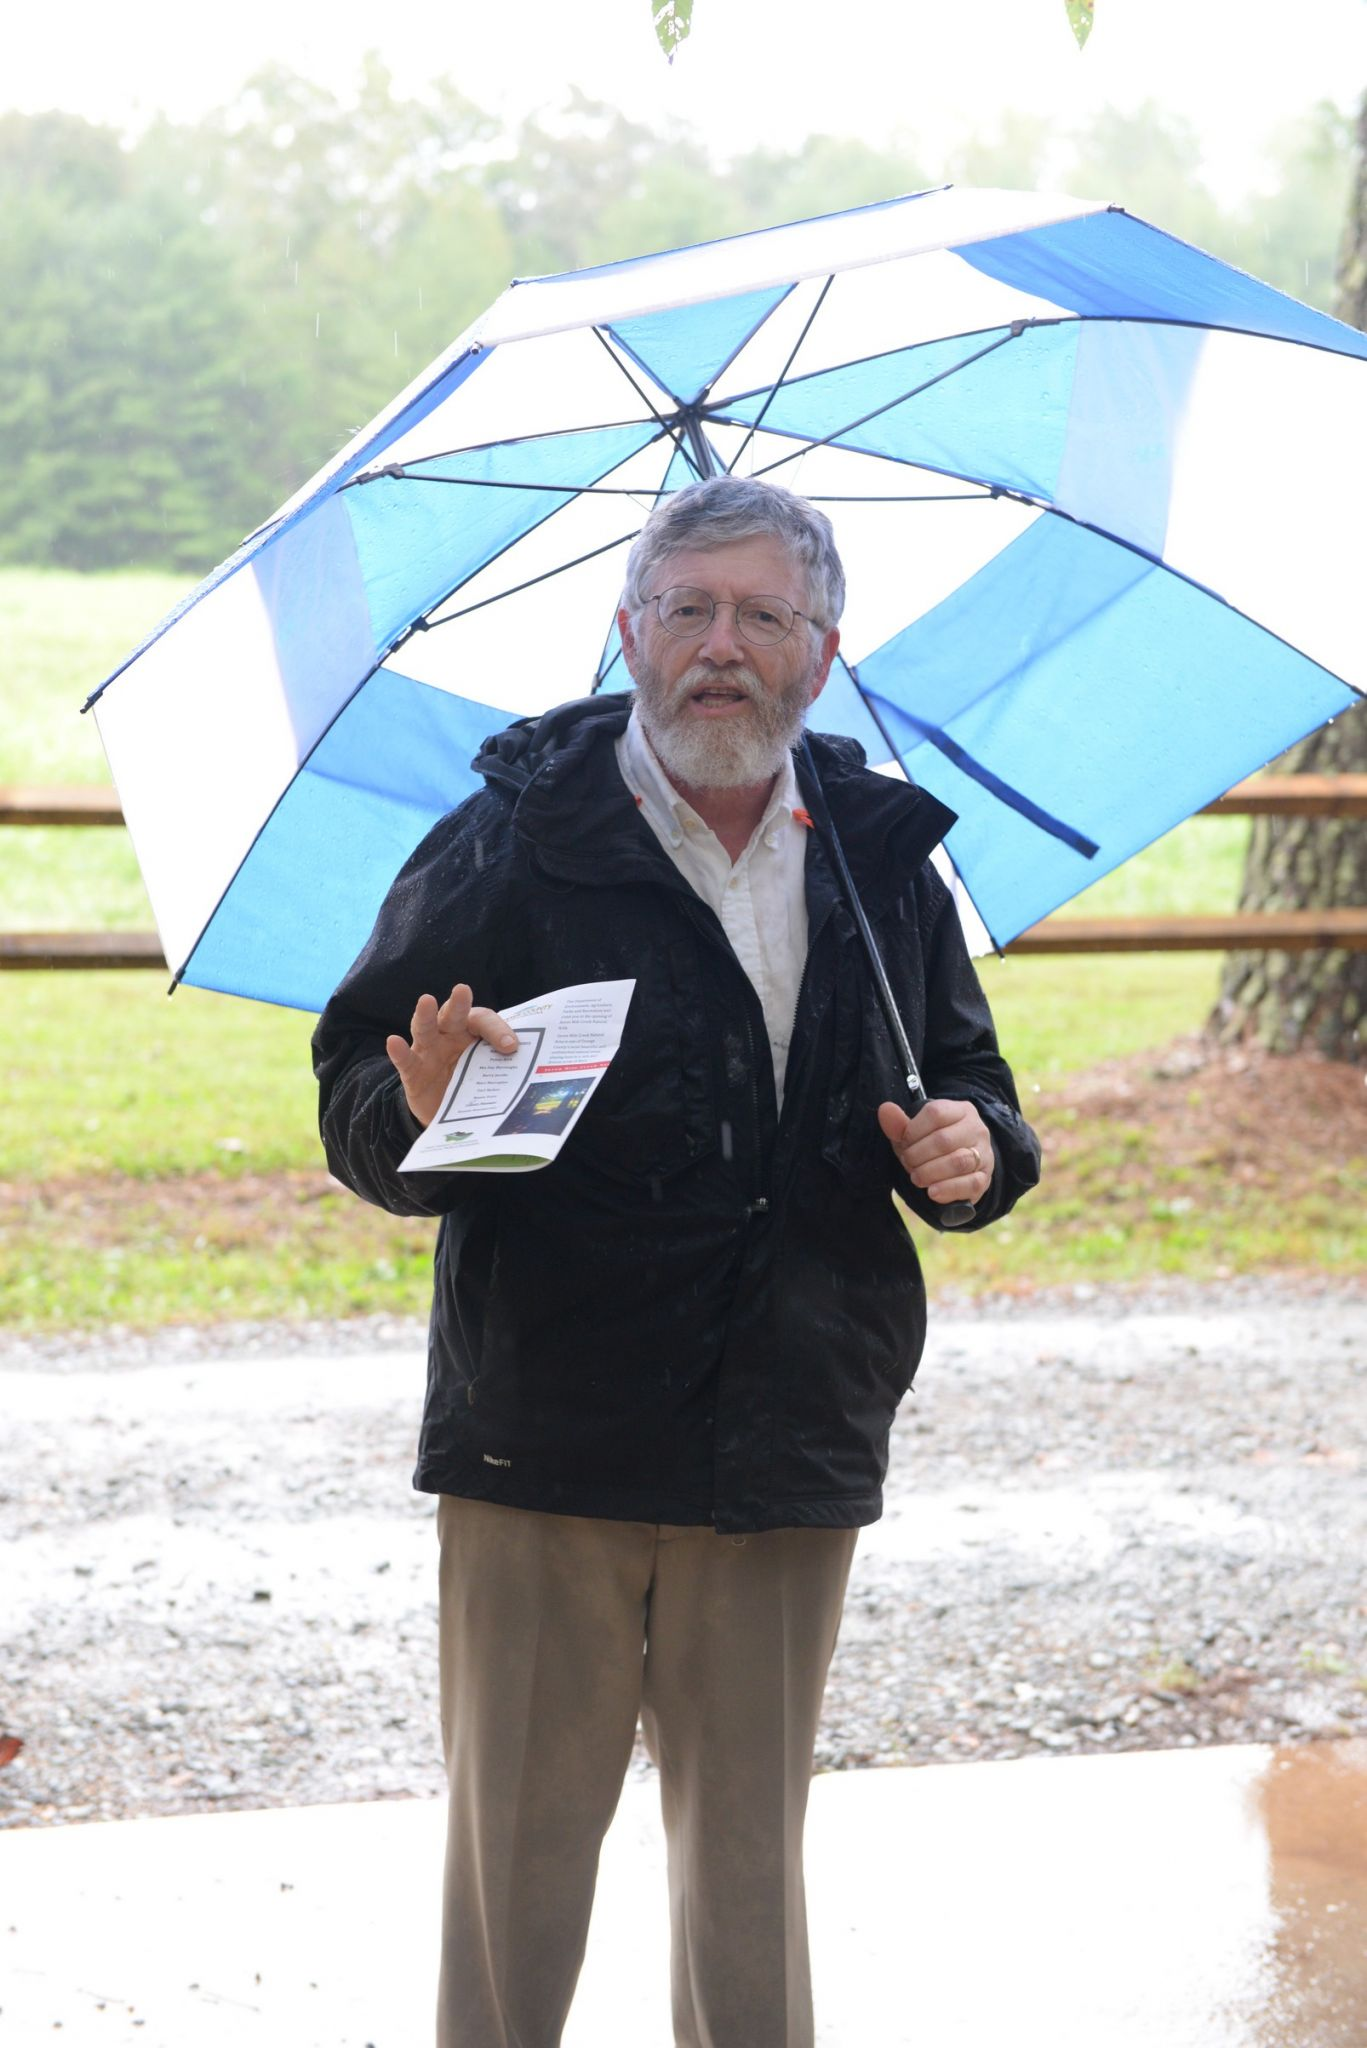 County Commissioner Barry Jacobs shares his comments